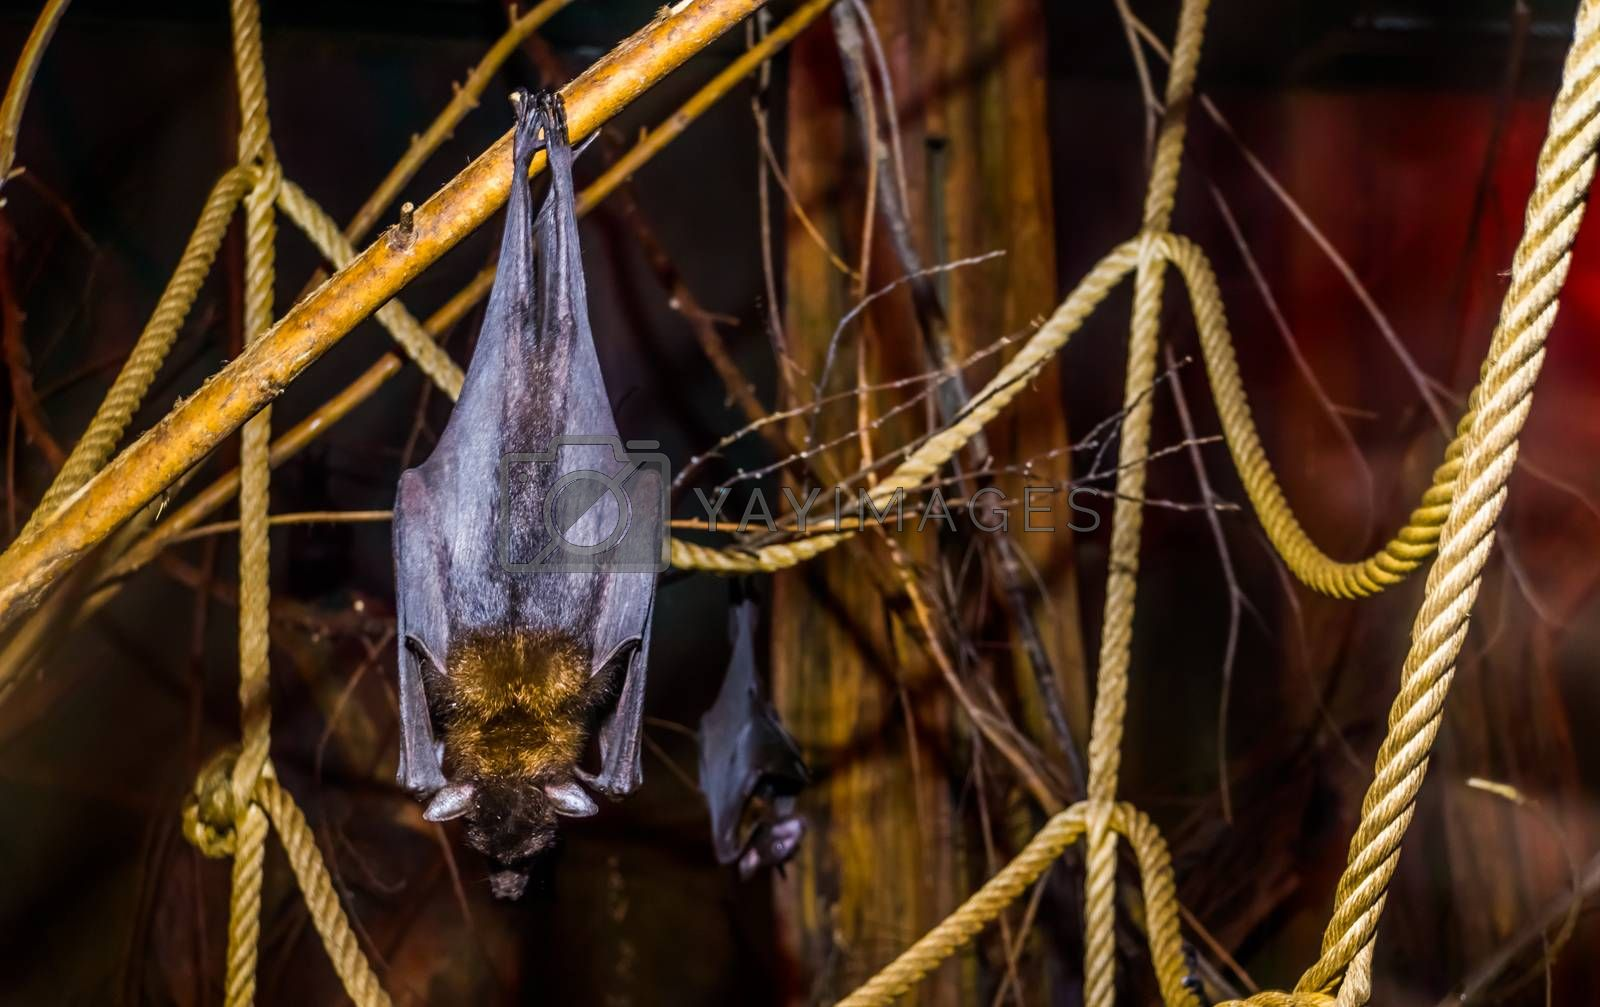 closeup of a lyle's flying fox hanging on a branch, Tropical and vulnerable bat specie from Asia, Nocturnal halloween animal